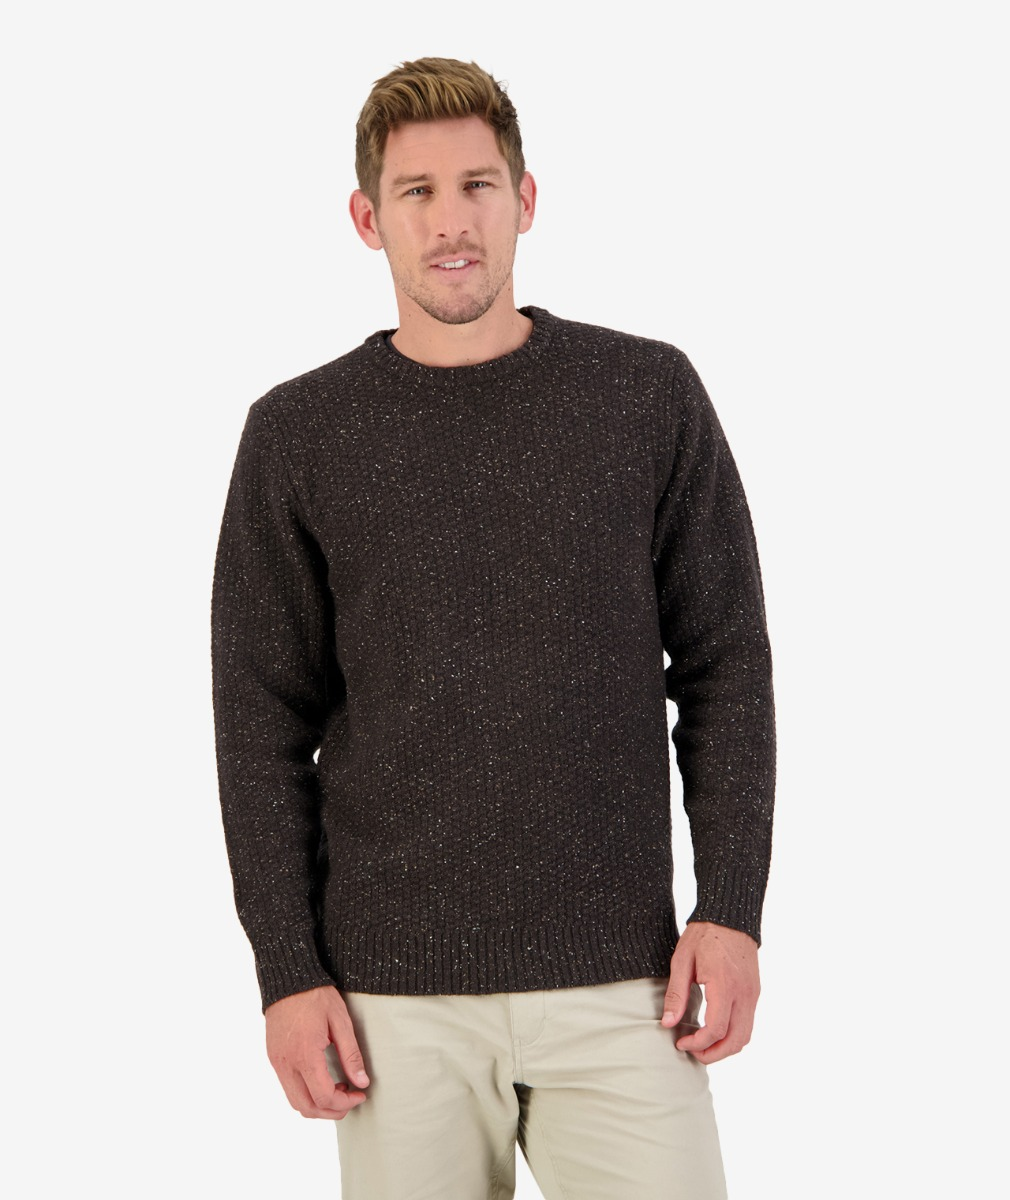 Sentry Hill Knit Crew in Brown